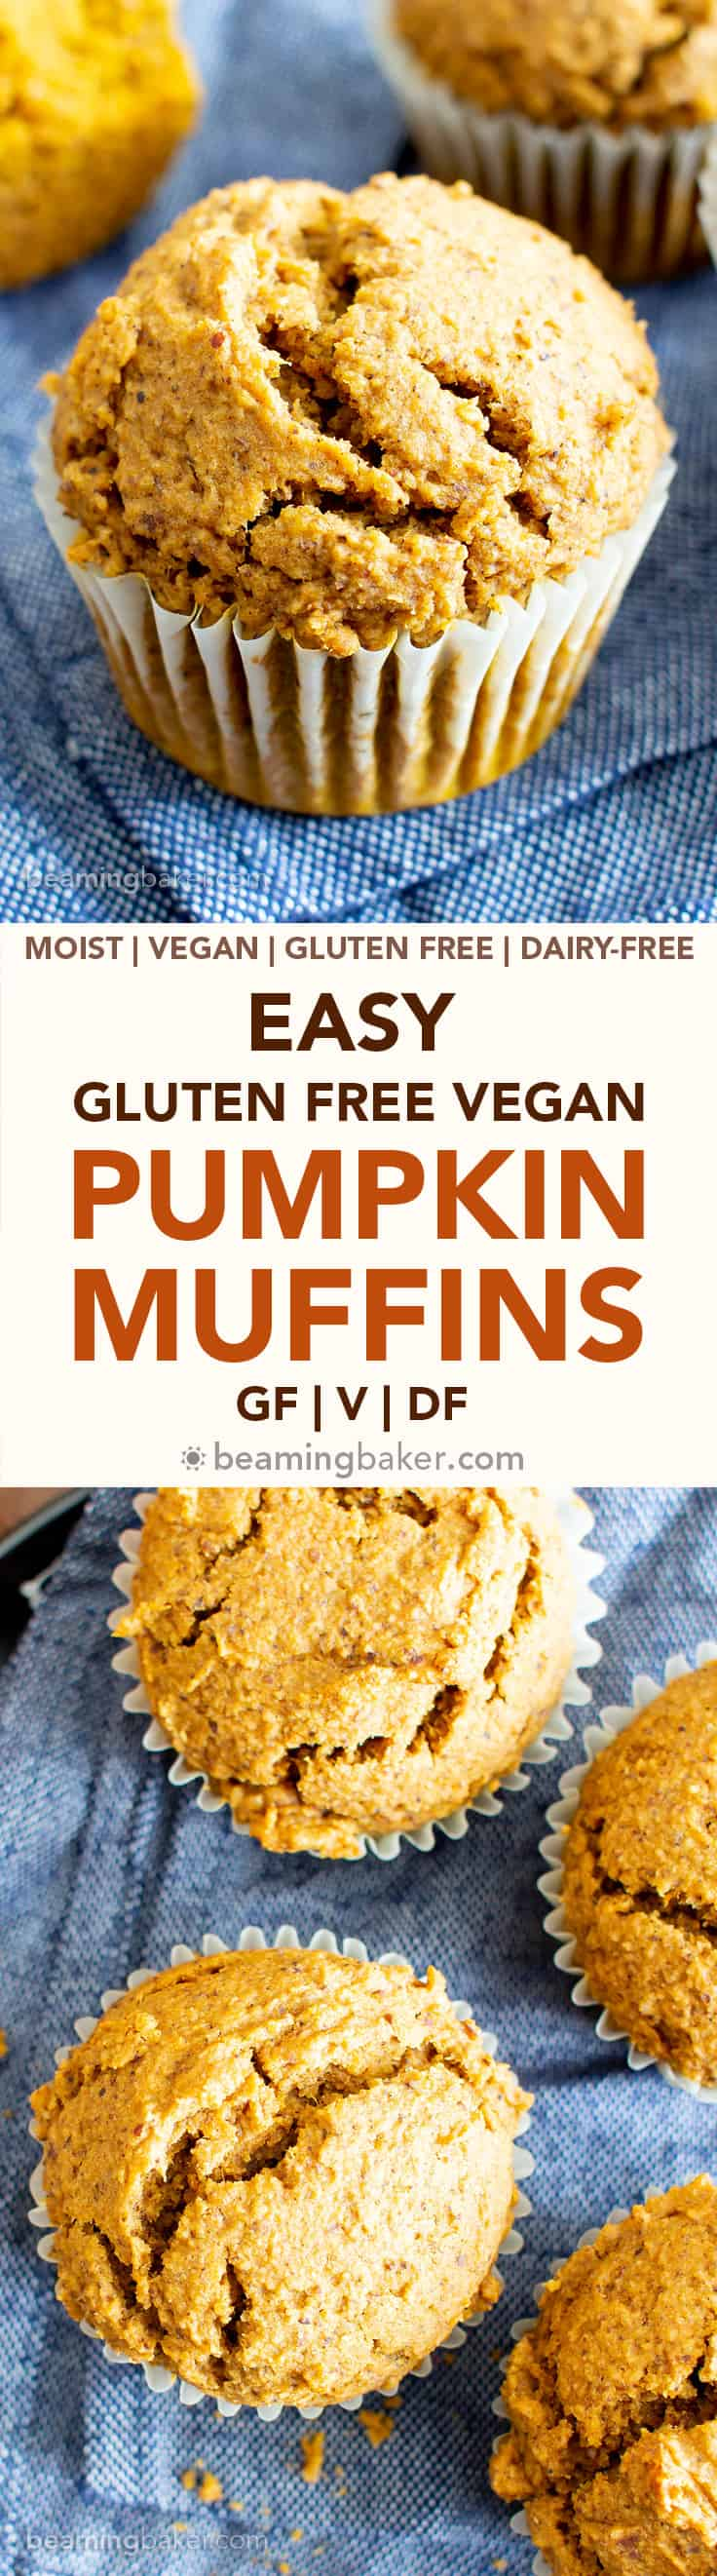 Easy Vegan Gluten Free Pumpkin Muffins Recipe (V, GF): an easy recipe for moist 'n fluffy pumpkin muffins bursting with your favorite fall spices. Made with healthy, whole ingredients. #Vegan #GlutenFree #Pumpkin #Muffins #PumpkinSpice #DairyFree #Healthy #Fall #RefinedSugarFree | Recipe at BeamingBaker.com